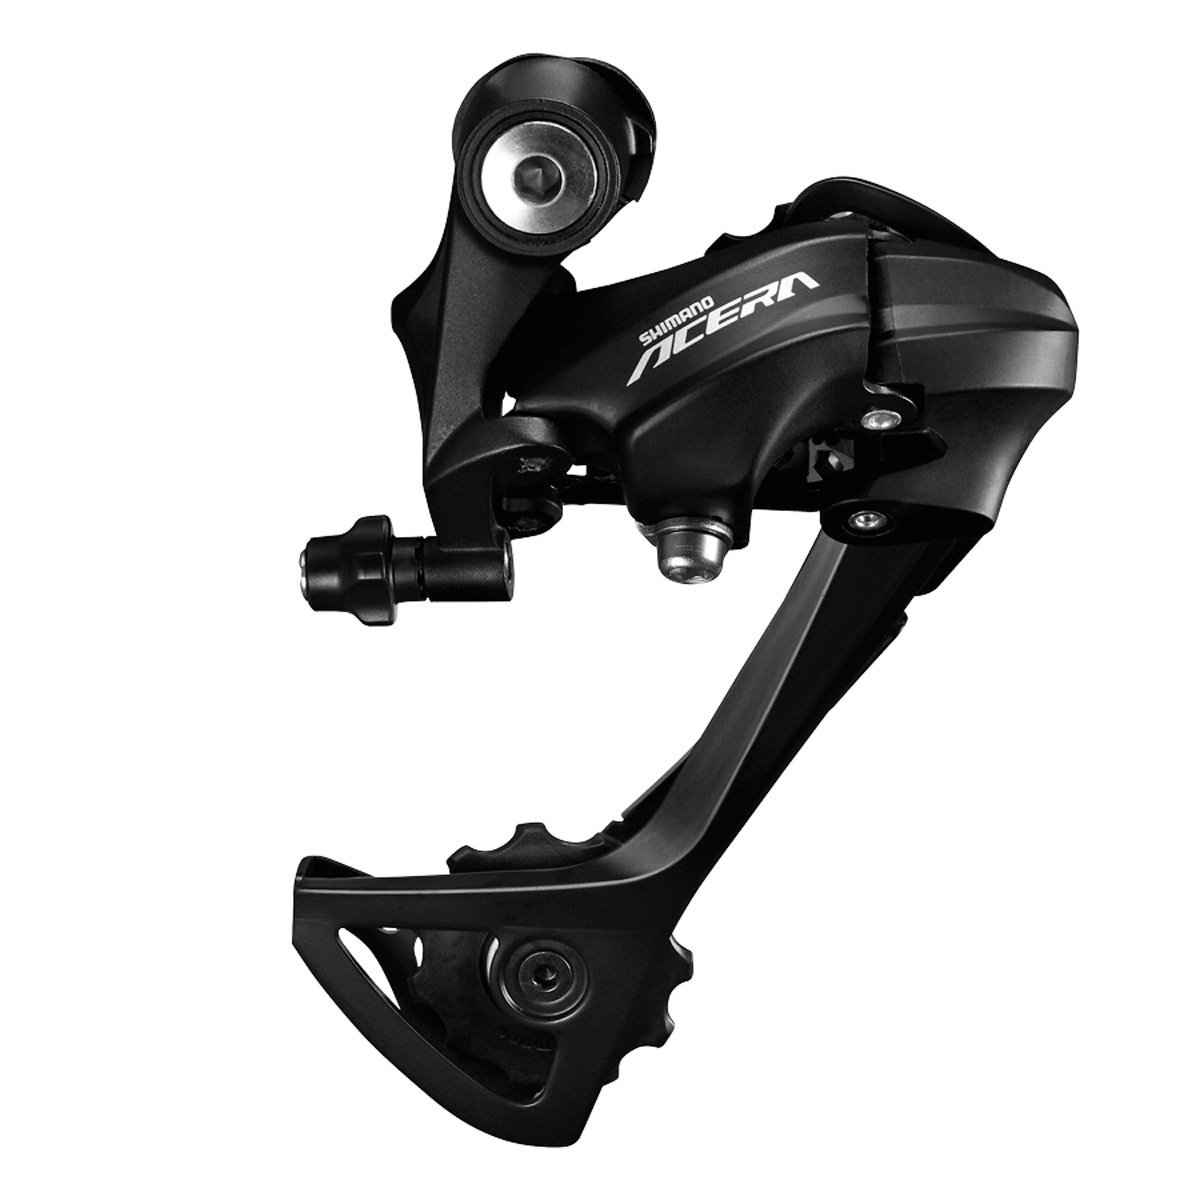 Buy Shimano Acera 9 Speed Mountain Bicycle Rear Derailleur Rd T3000 In Cheap Price On Alibaba Com